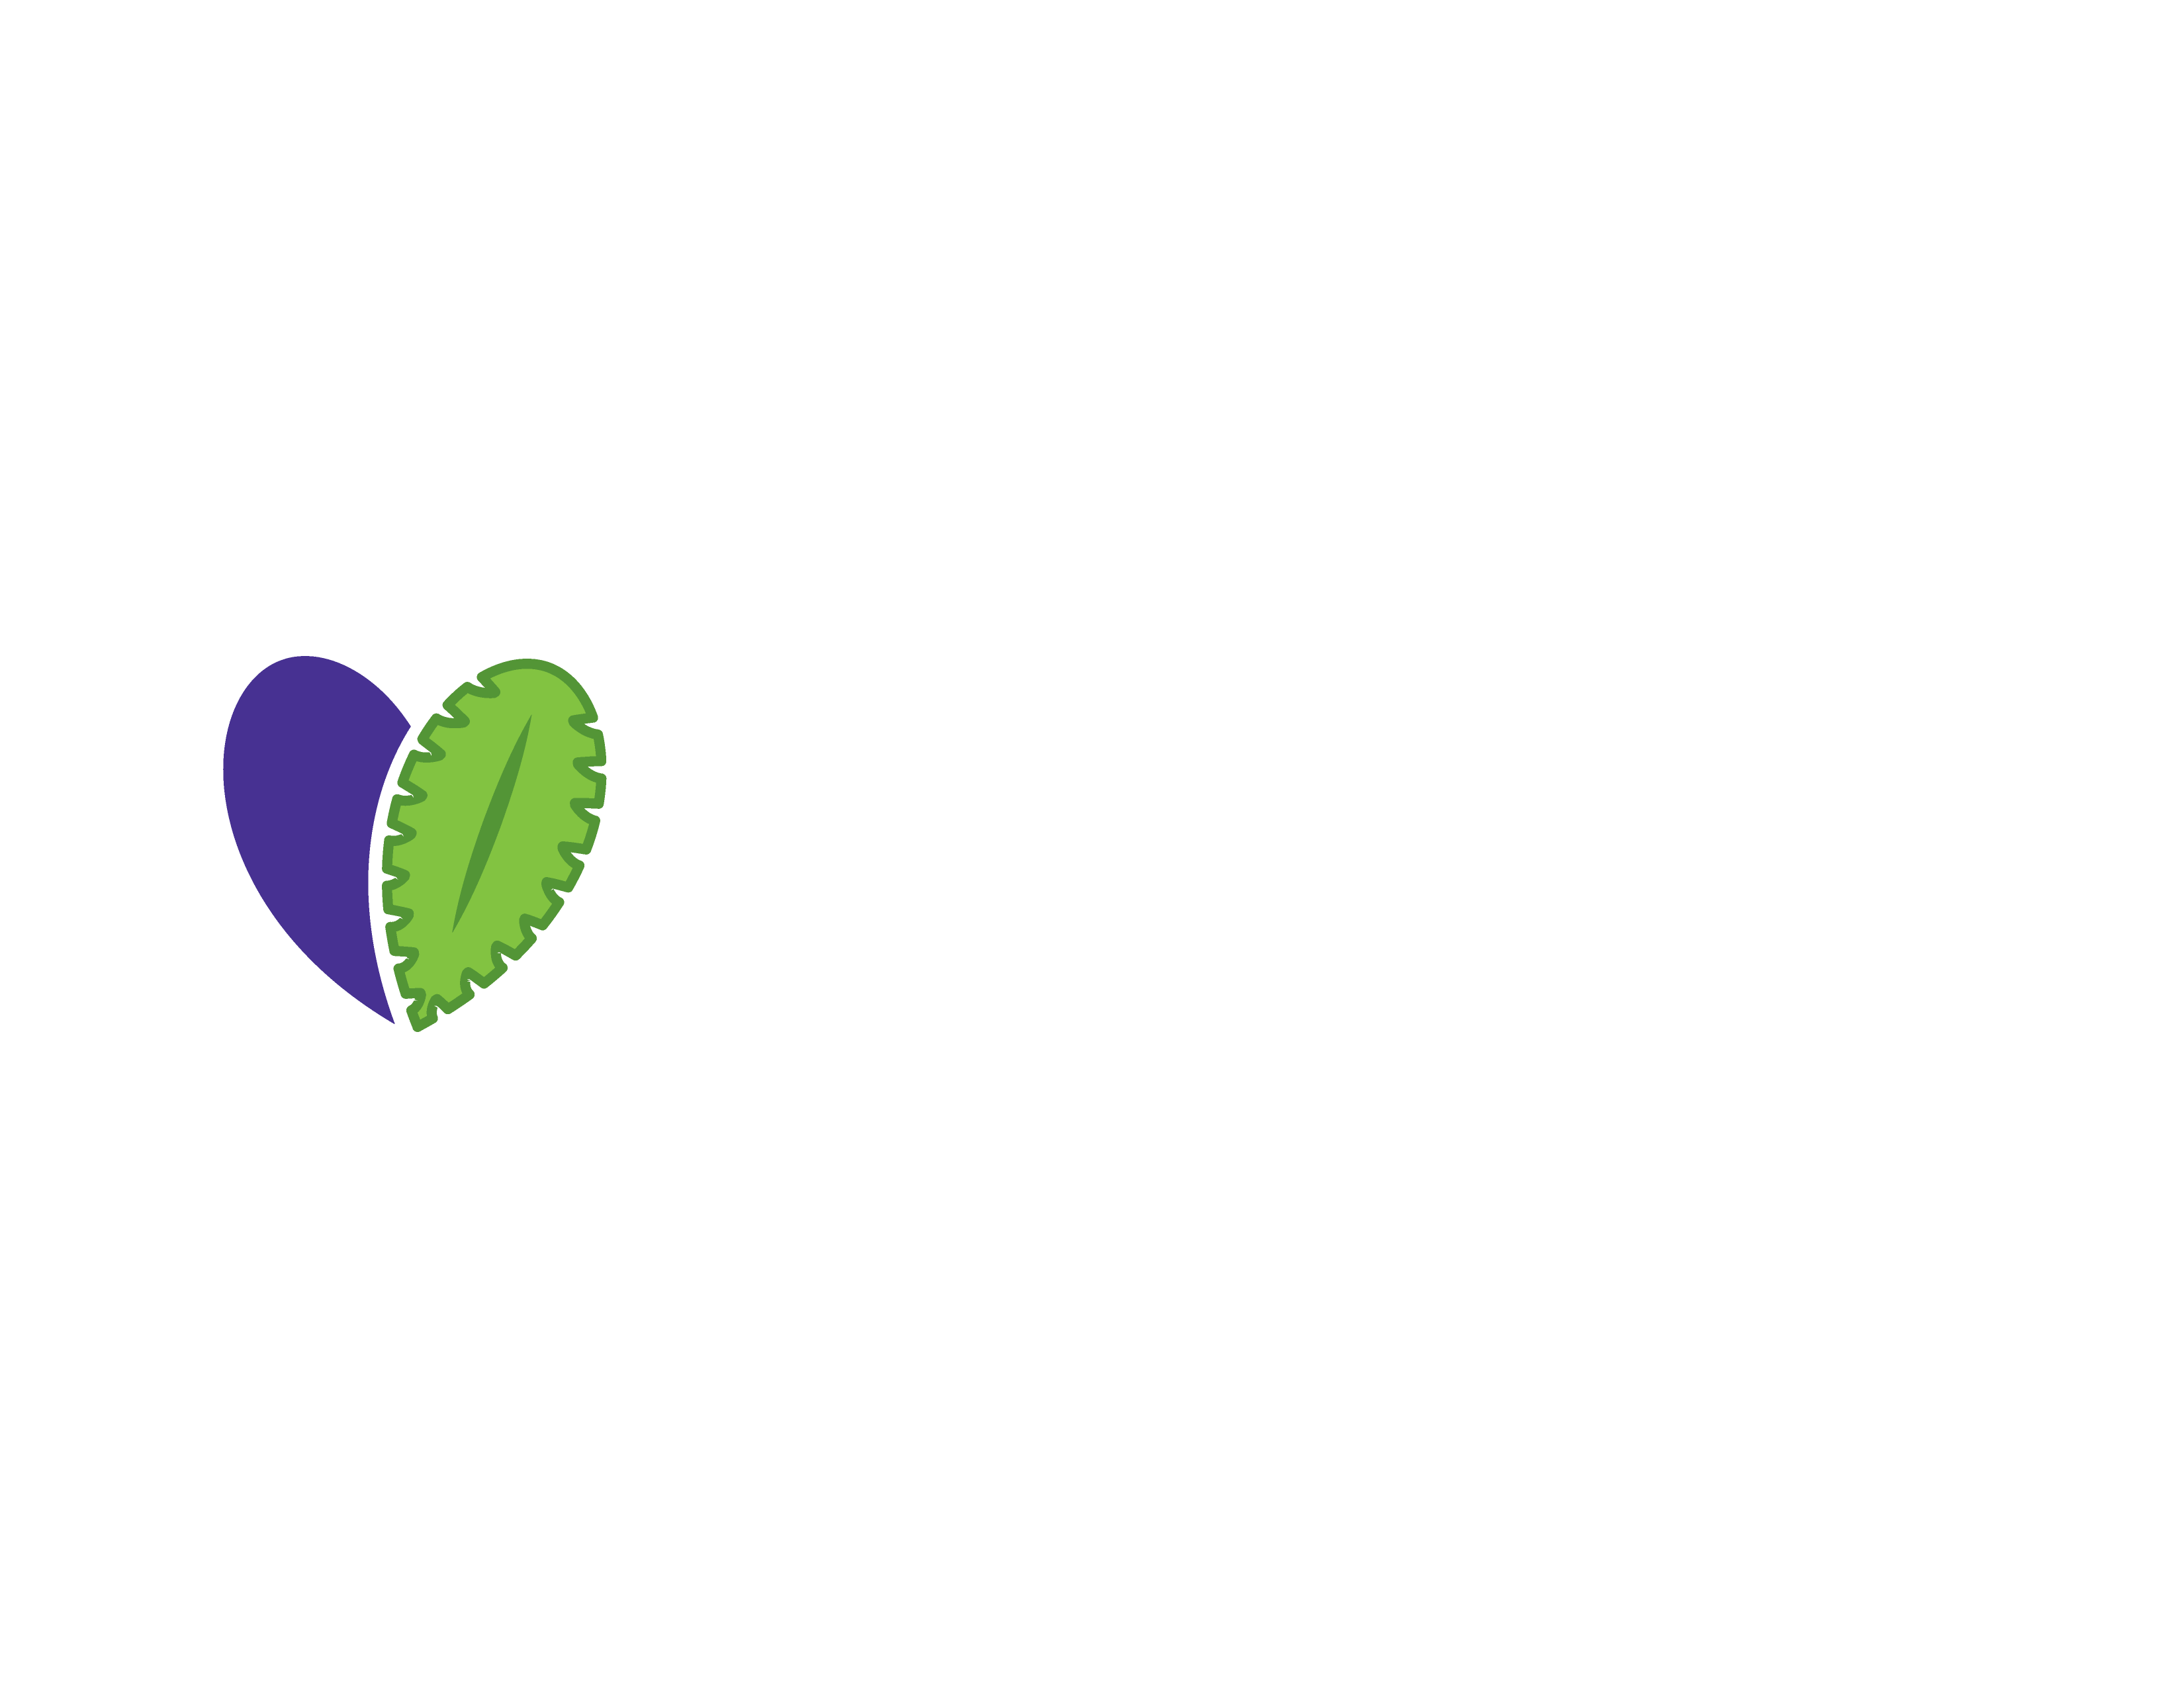 compassionate alternatives logo